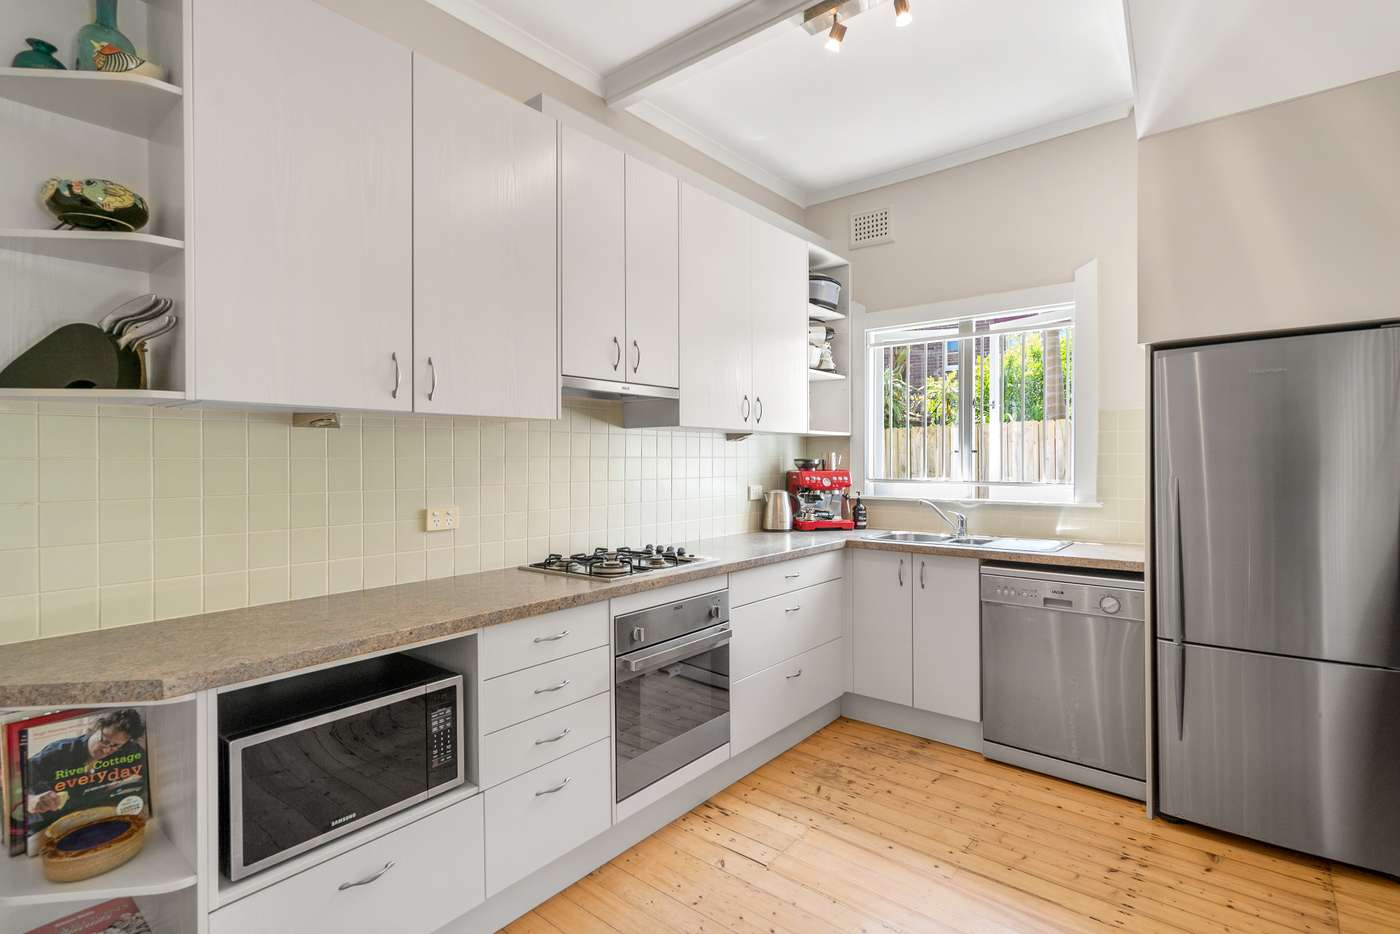 Sixth view of Homely house listing, 32 Plowman Street, North Bondi NSW 2026